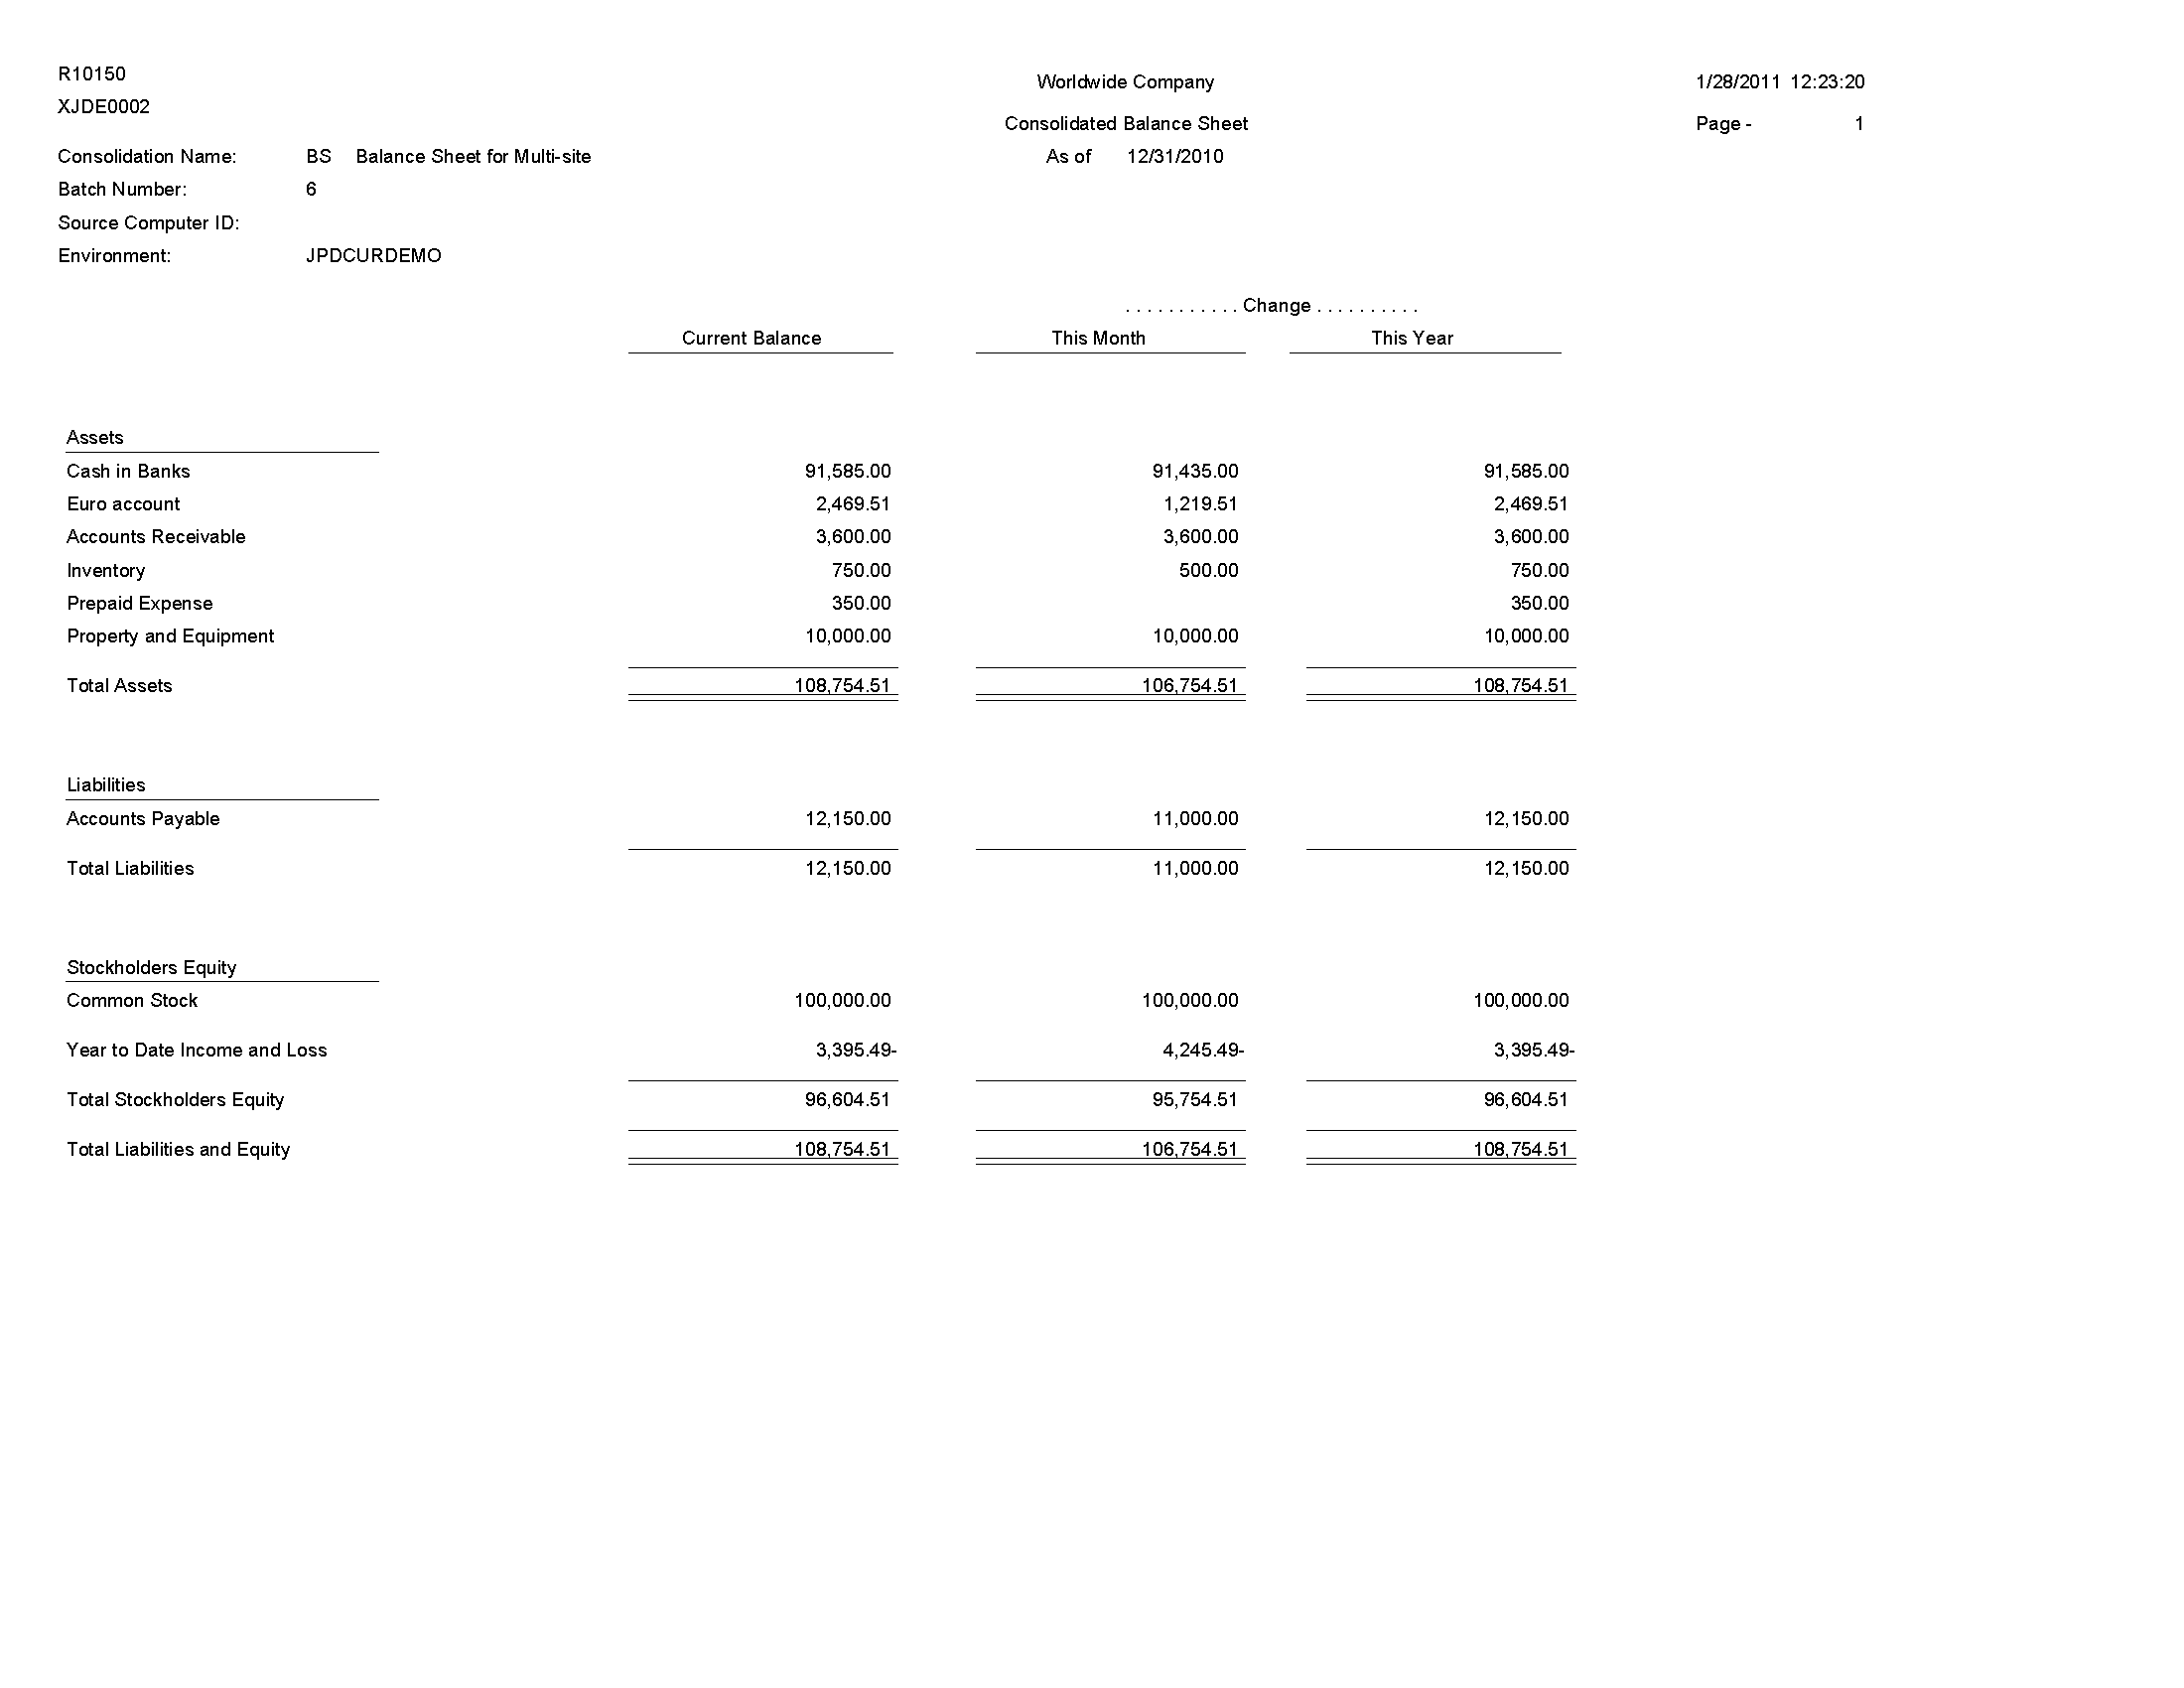 Assets And Liabilities Spreadsheet Template   Natural Buff Dog